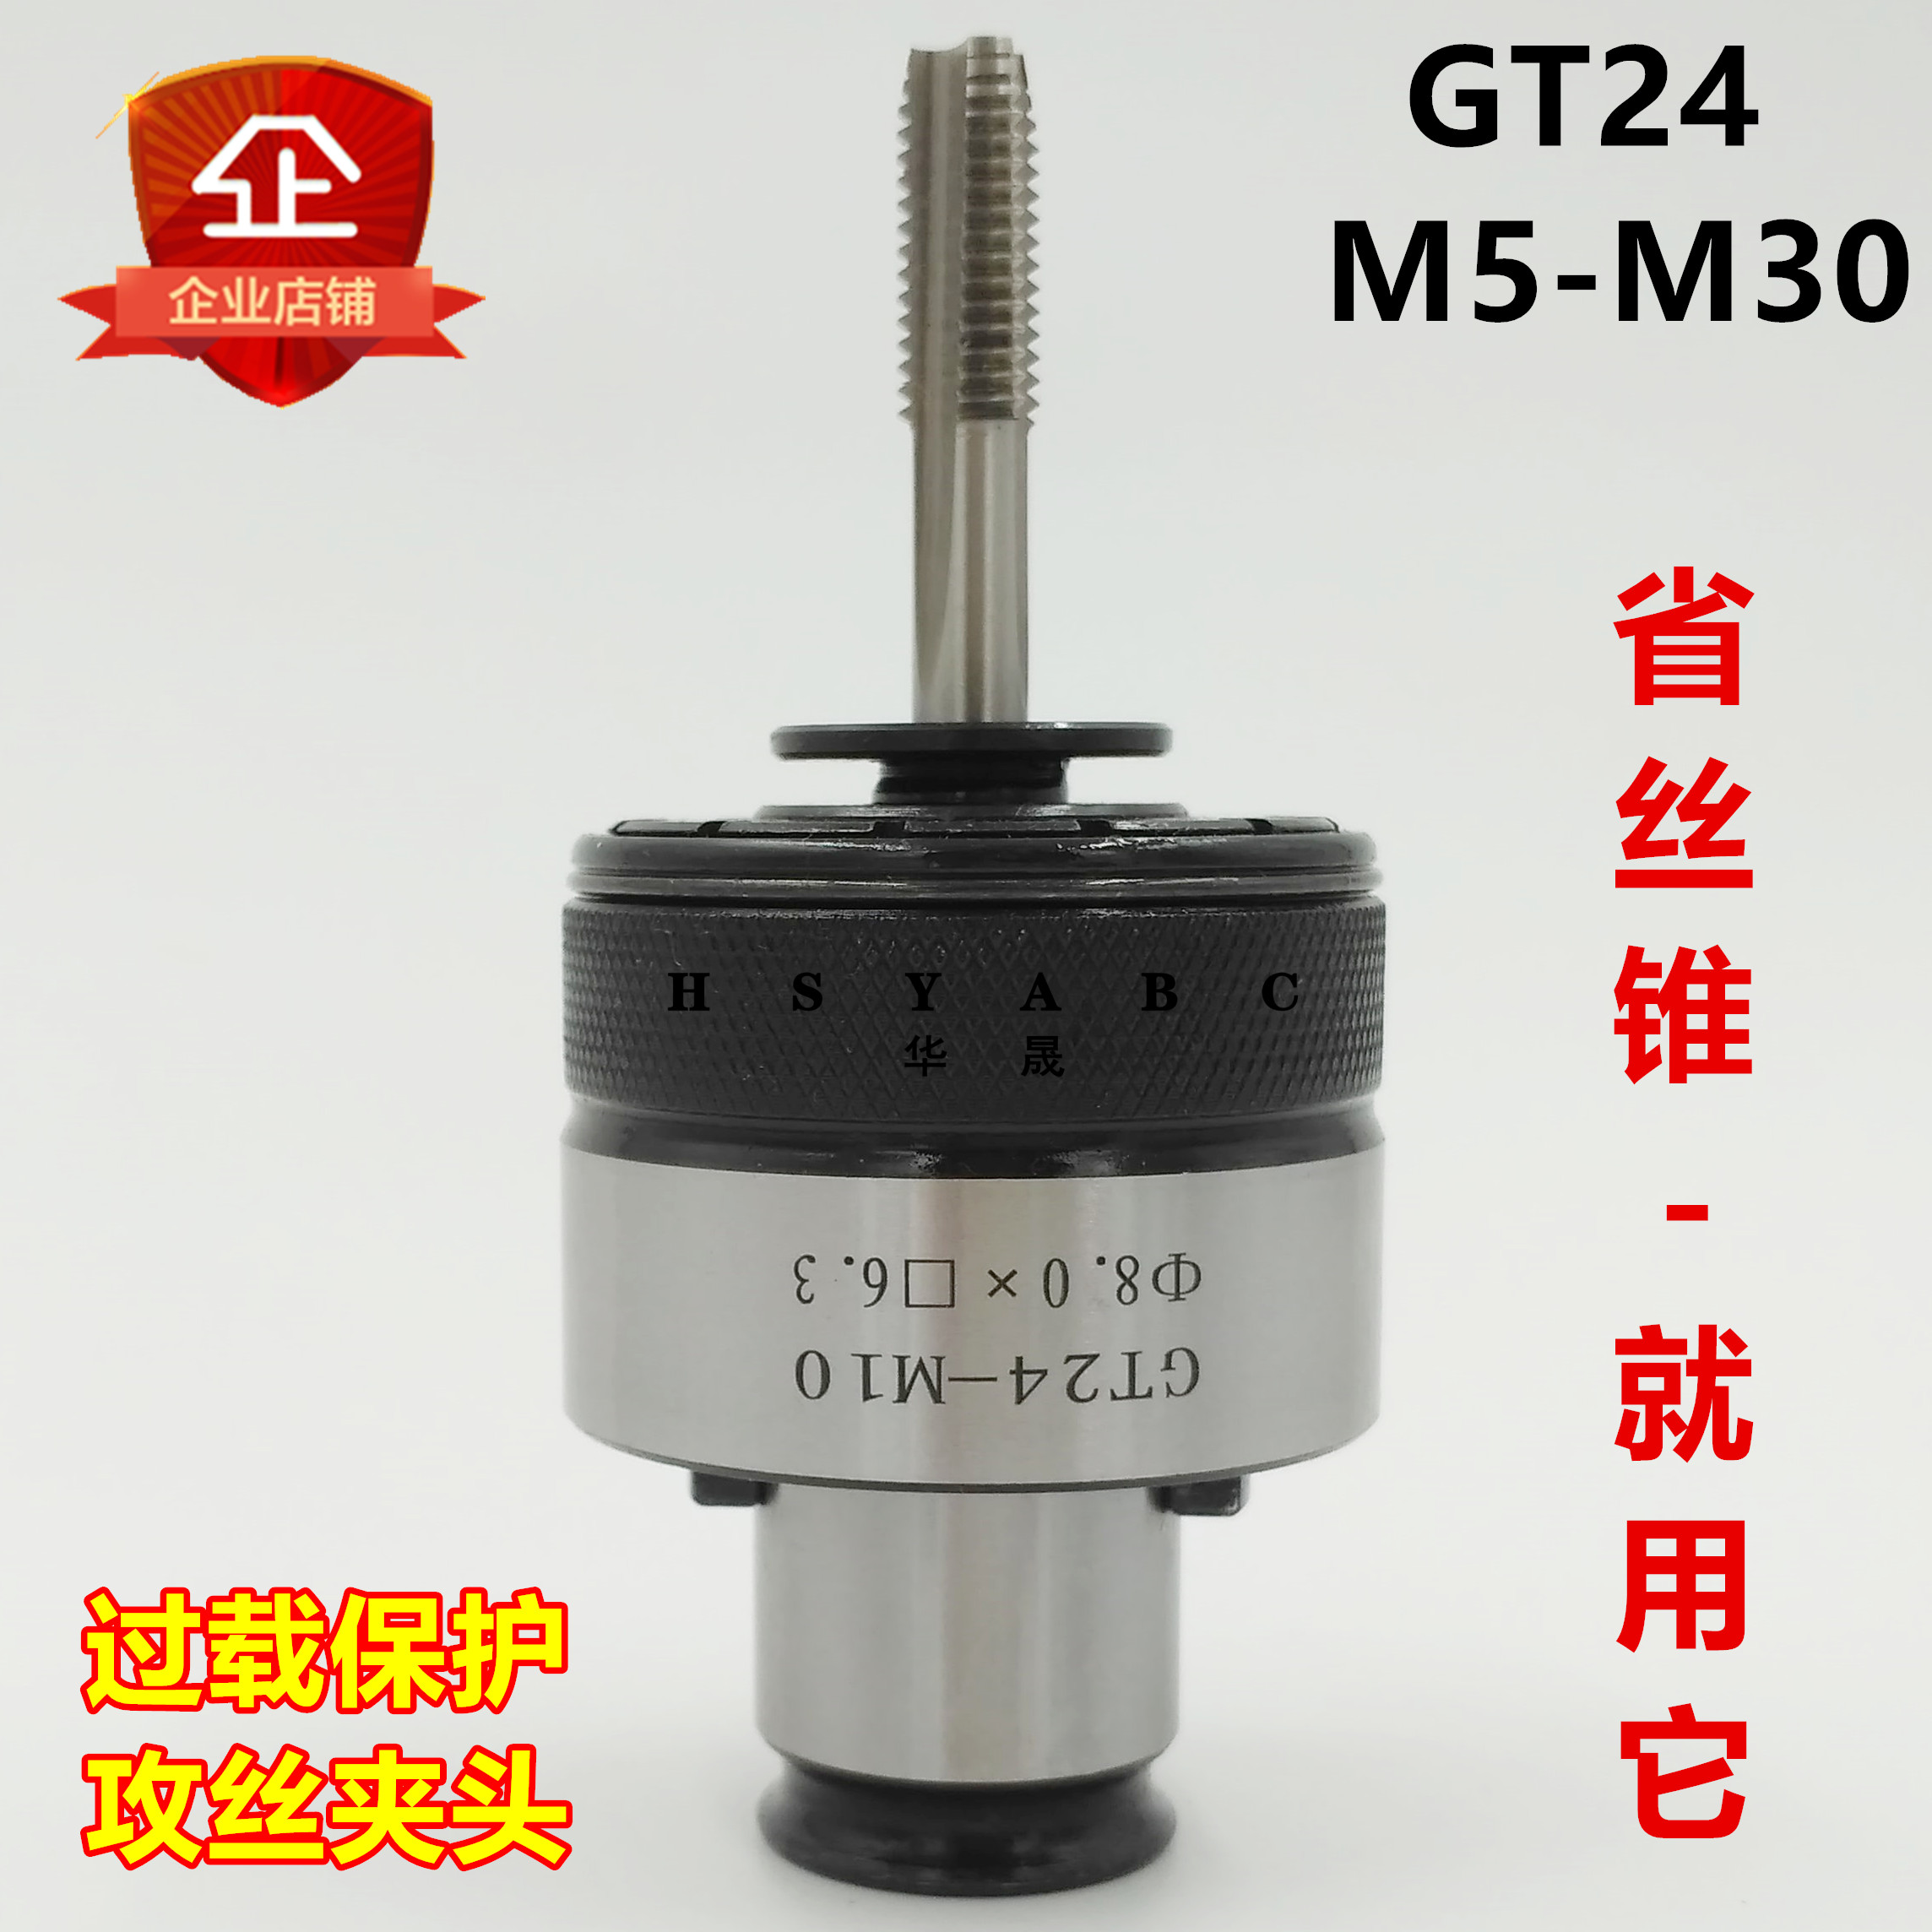 2 tapping machine bench seat 4 GT of magnetic chuck chuck wire overload protection safety torque screw drill rocker drill